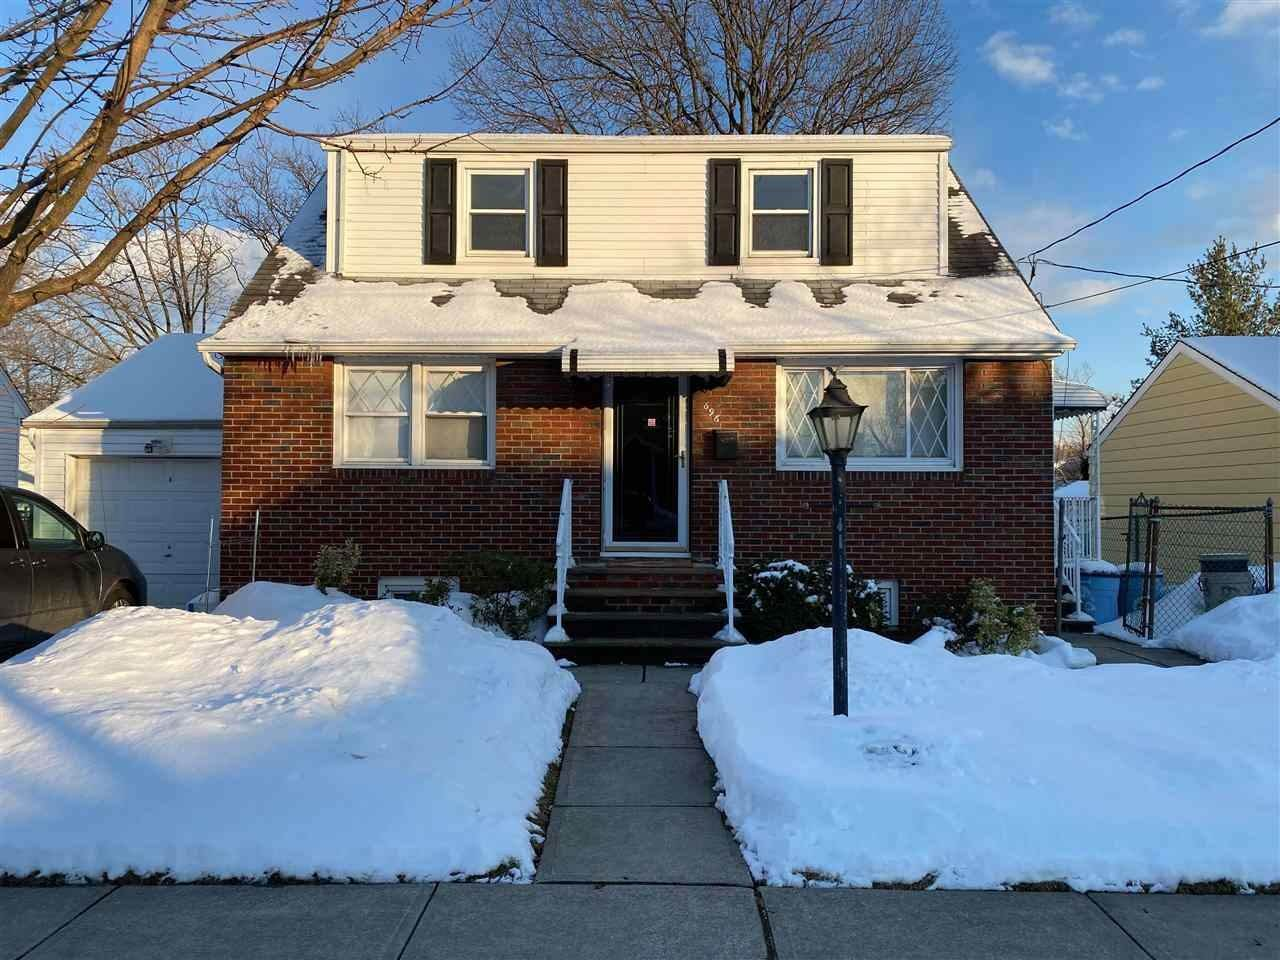 Single Family Home for Rent at 696 2ND STREET Secaucus, New Jersey, 07094 United States